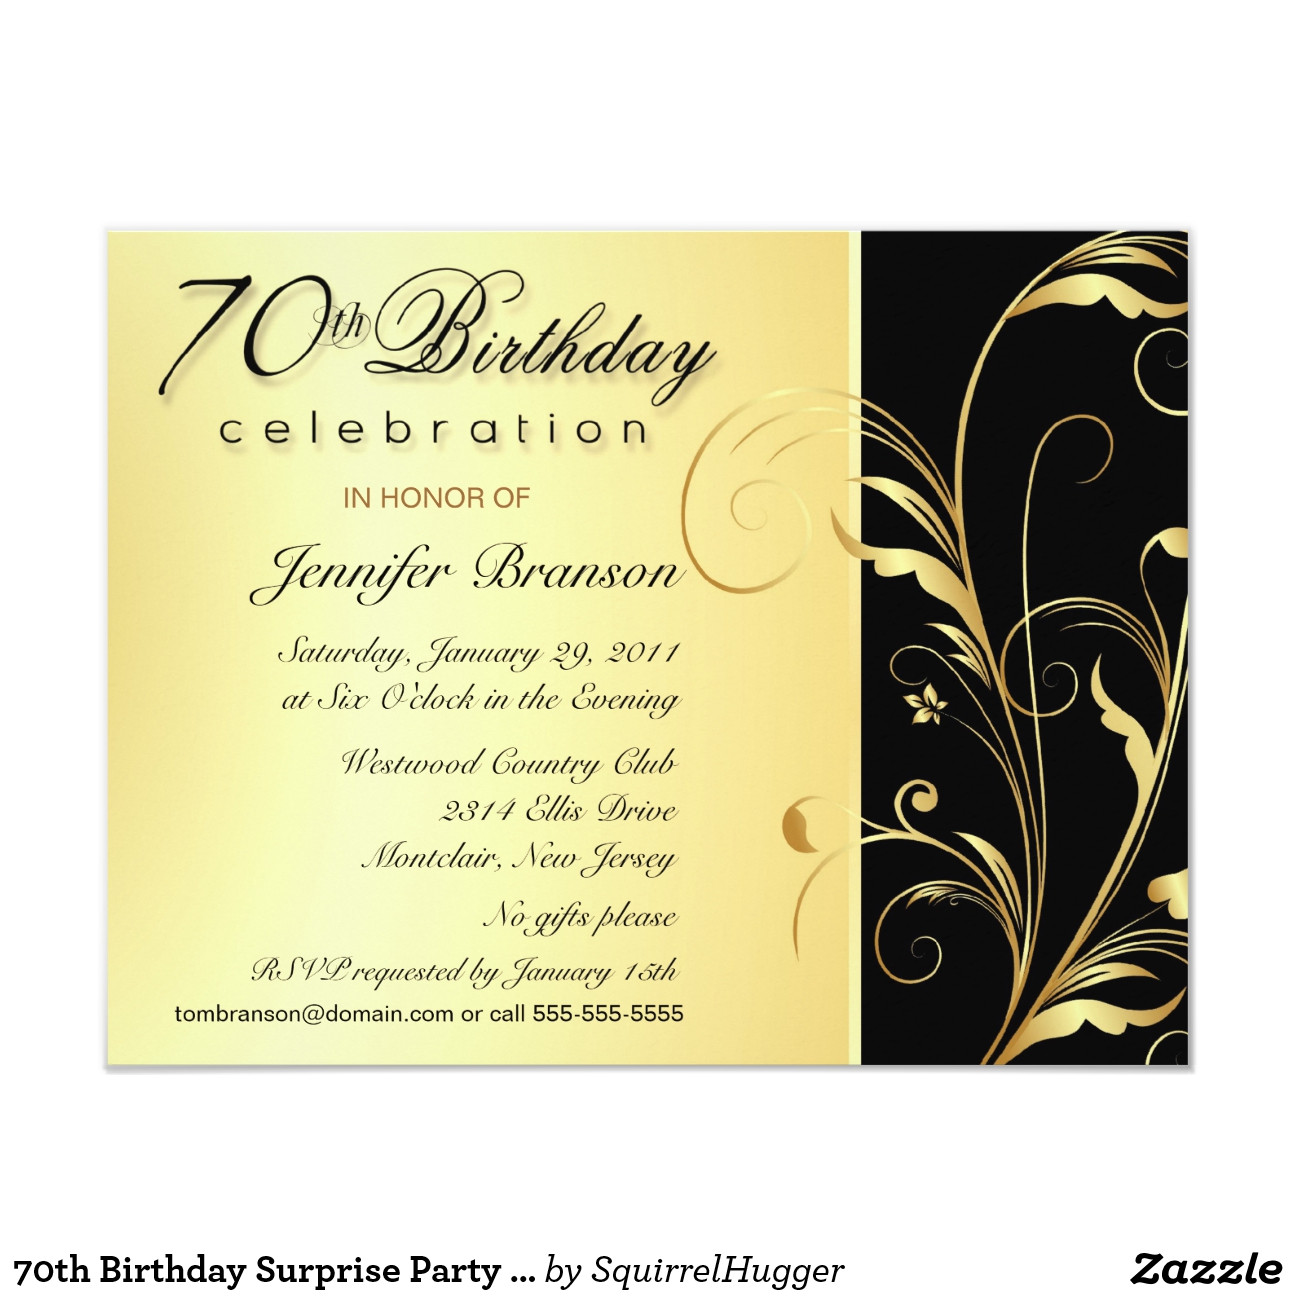 Best ideas about Zazzle Birthday Invitations . Save or Pin 70th birthday surprise party invitations Now.